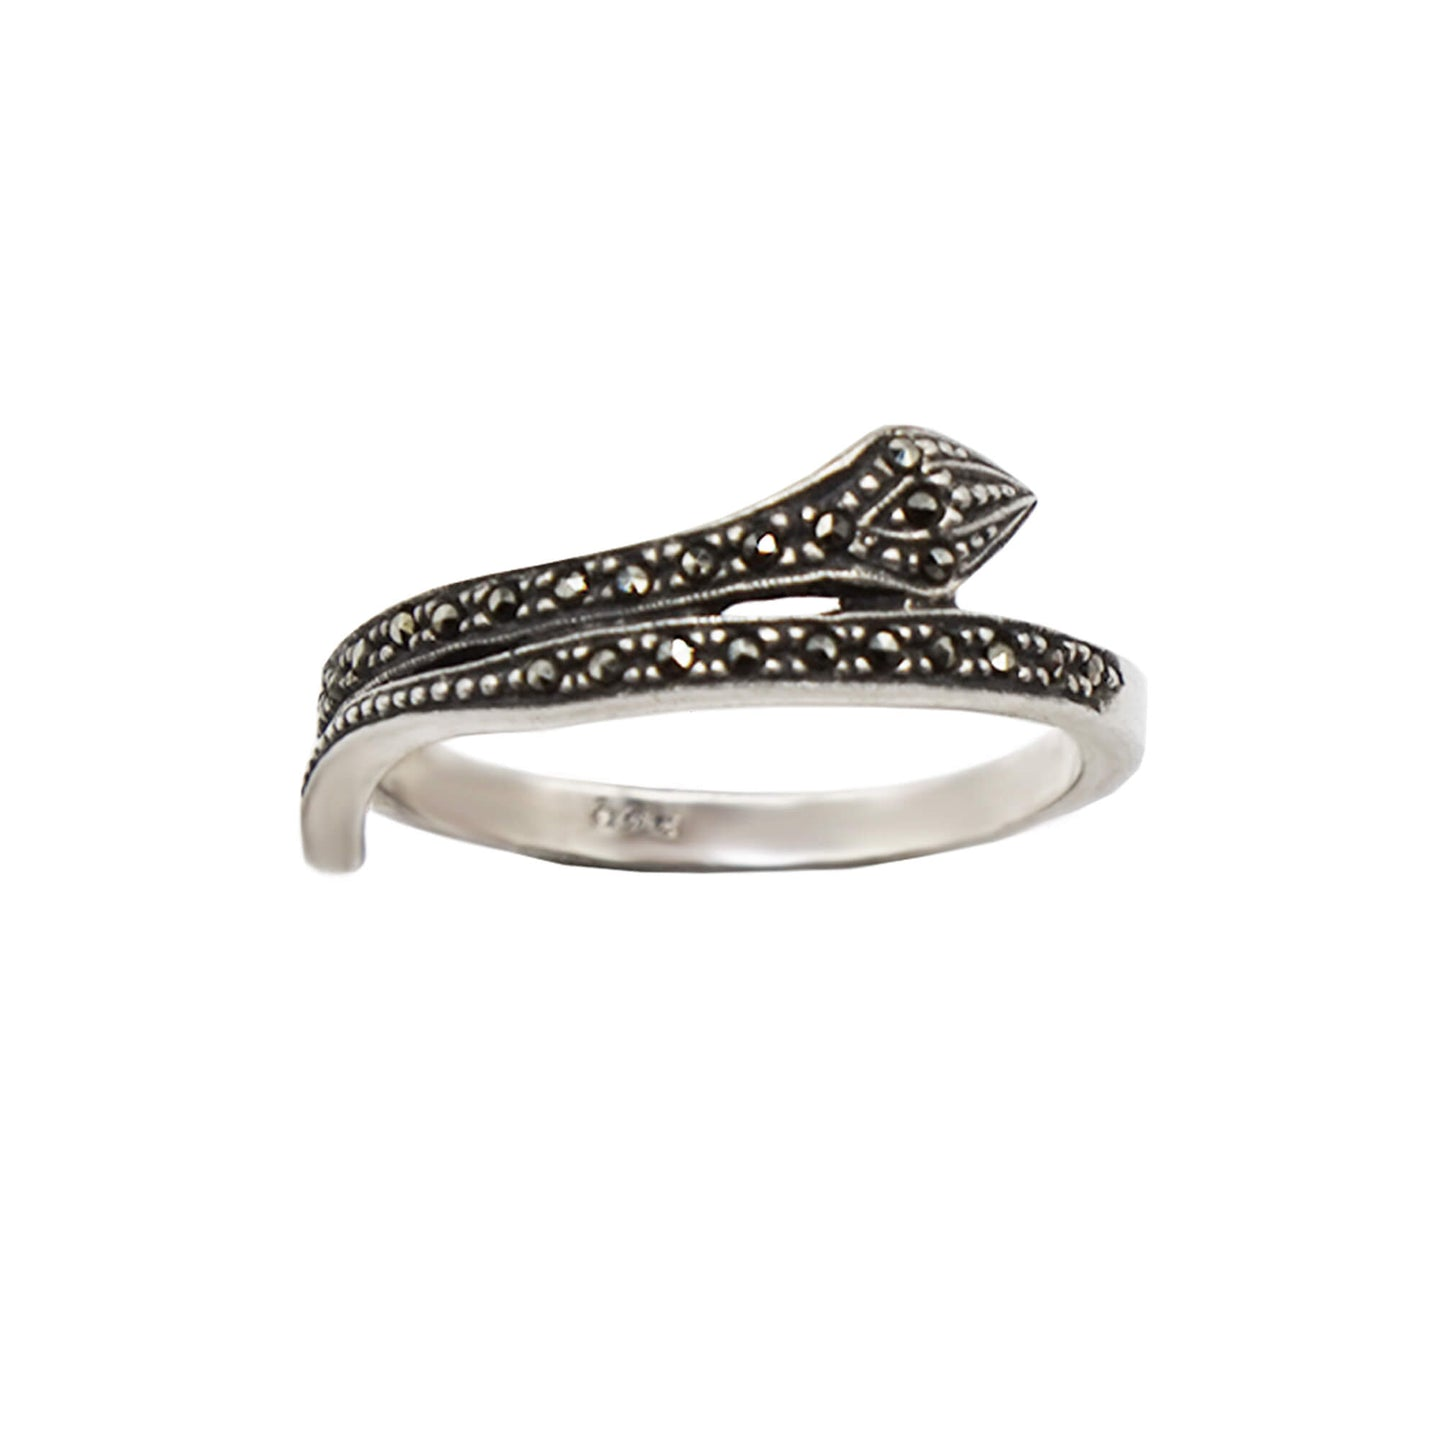 Close up Vintage Sterling Silver Snake Ring with marcasite stones, white background.